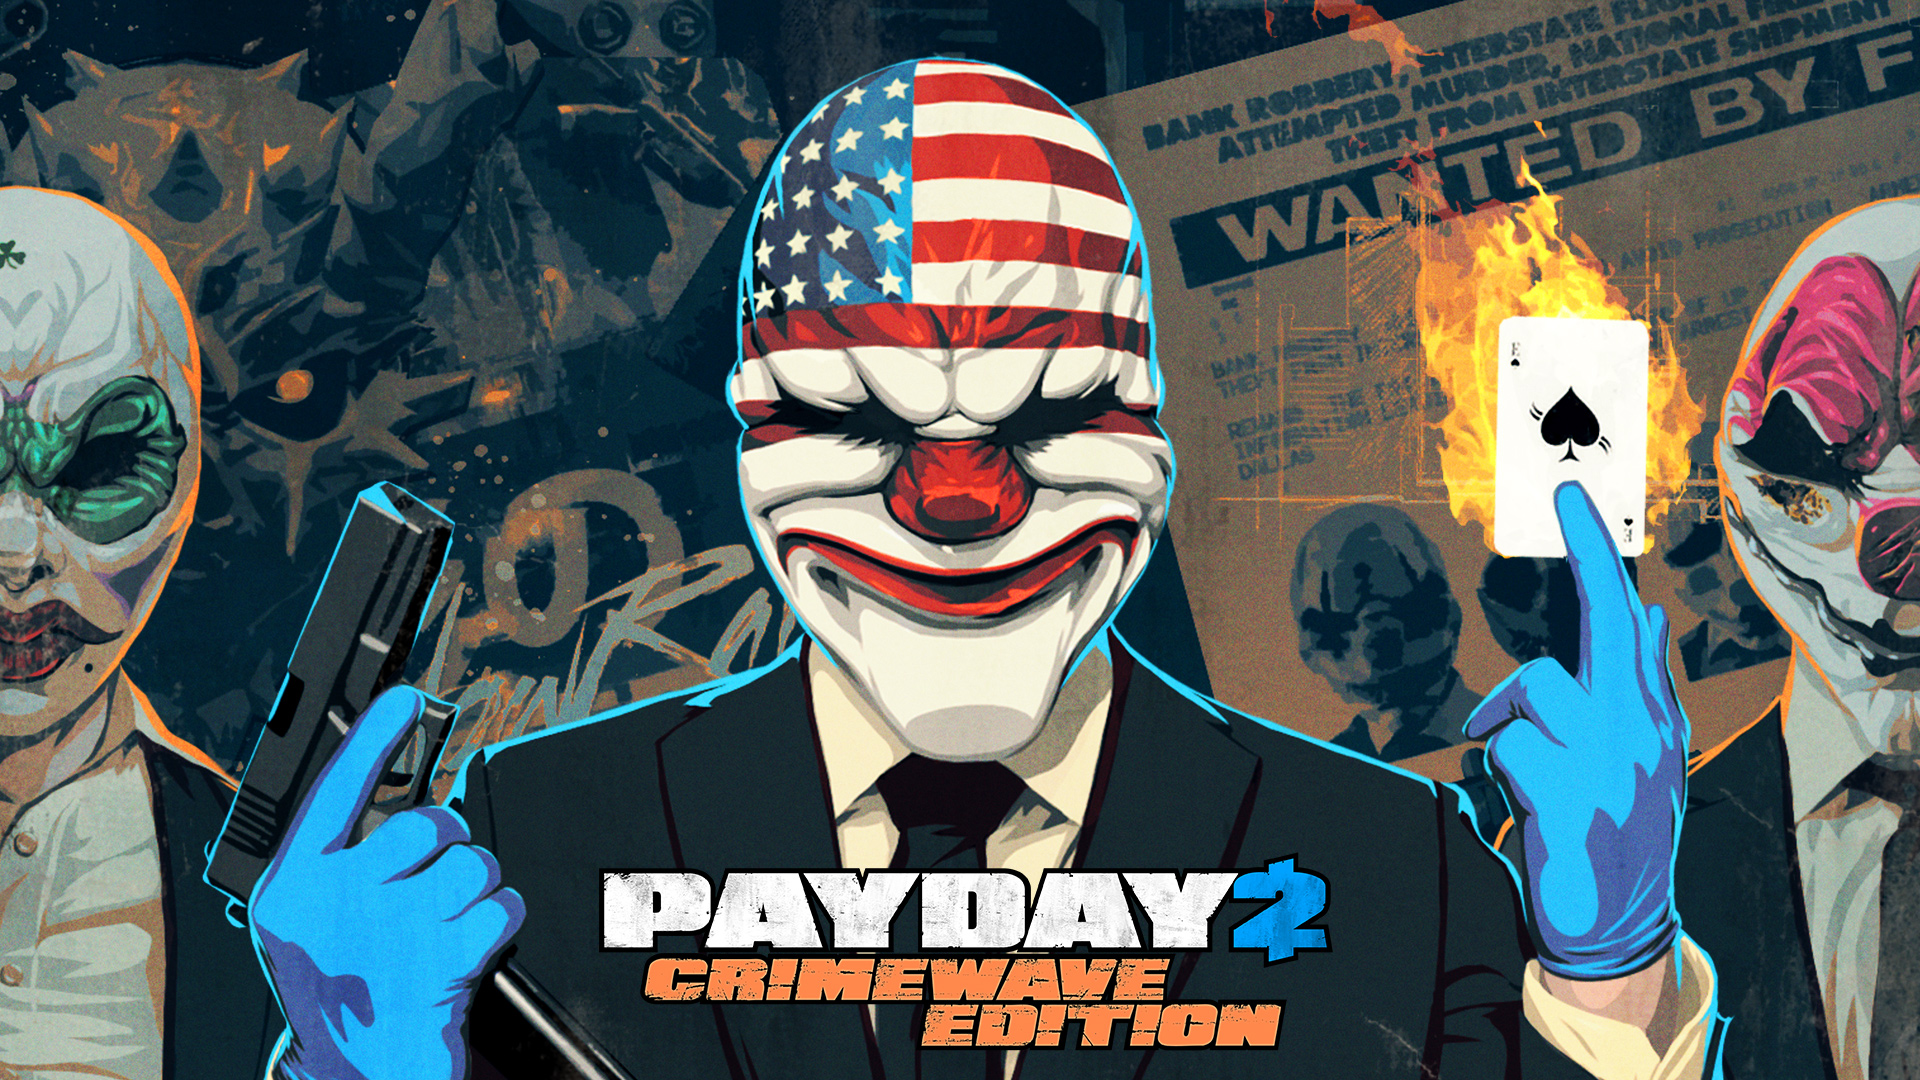 Most Viewed Payday 2 Wallpapers 4k Wallpapers